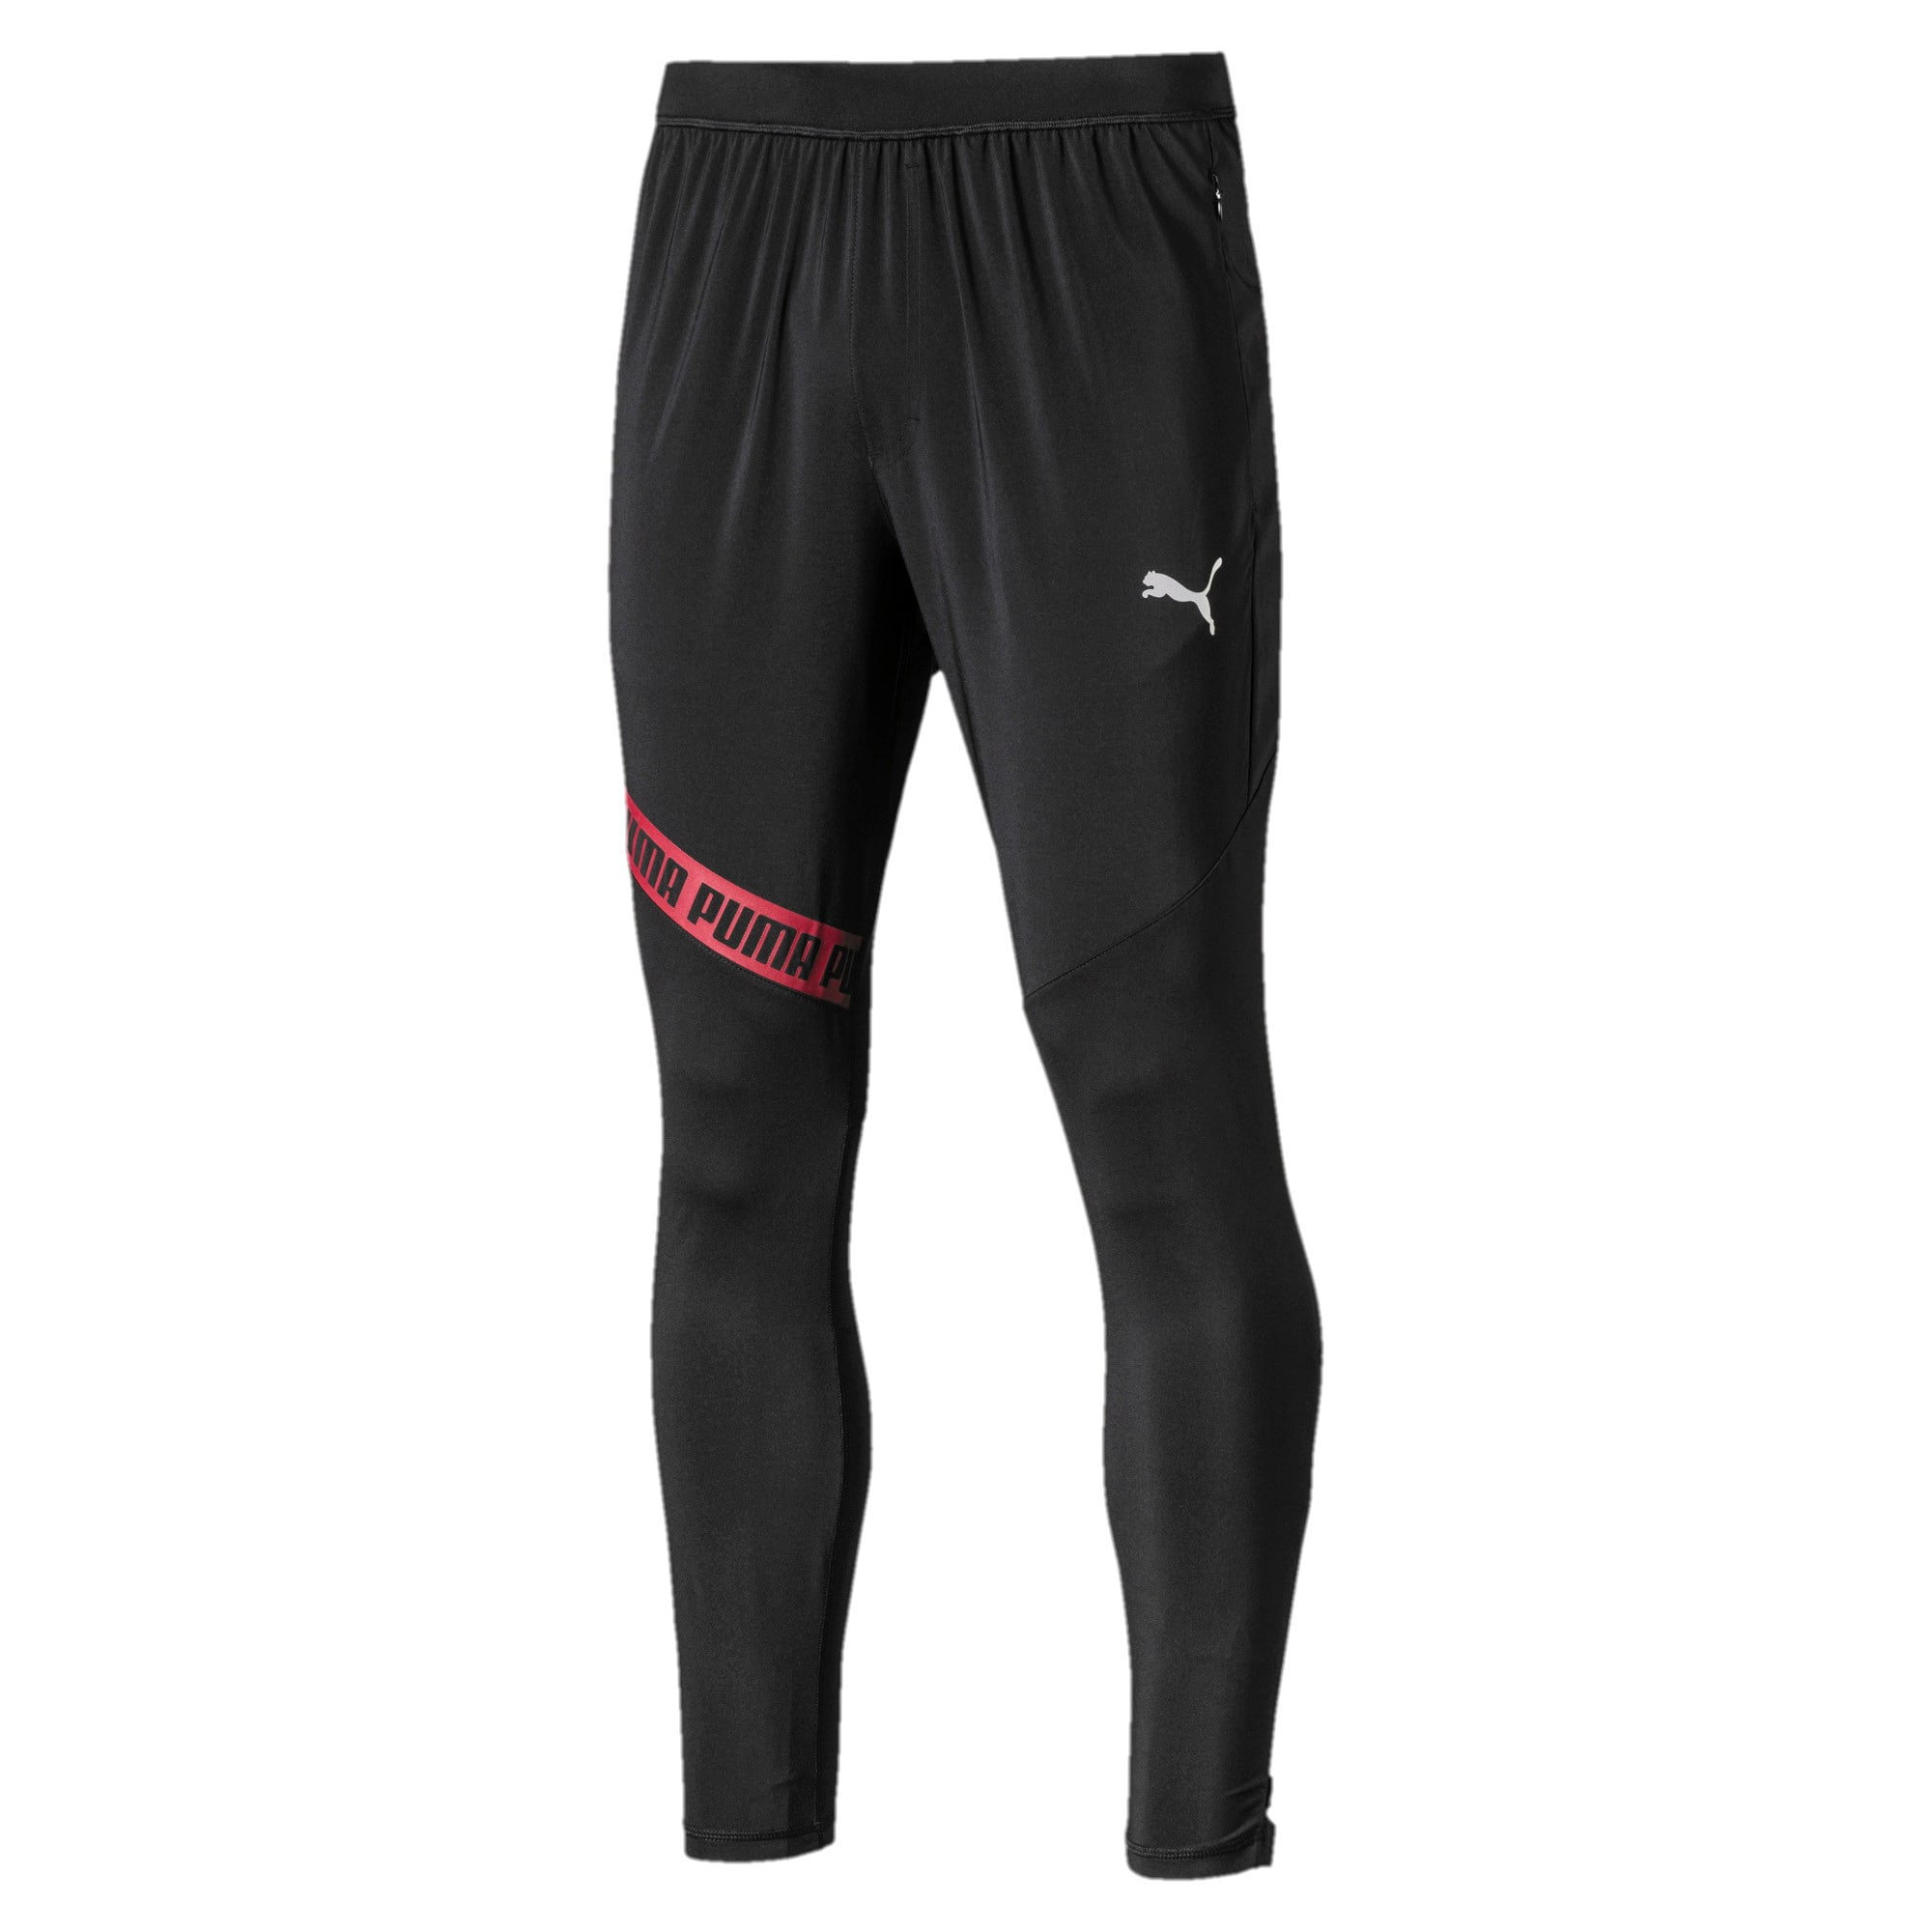 Thumbnail 4 of Get Fast Excite Men's Sweatpants, Puma Black, medium